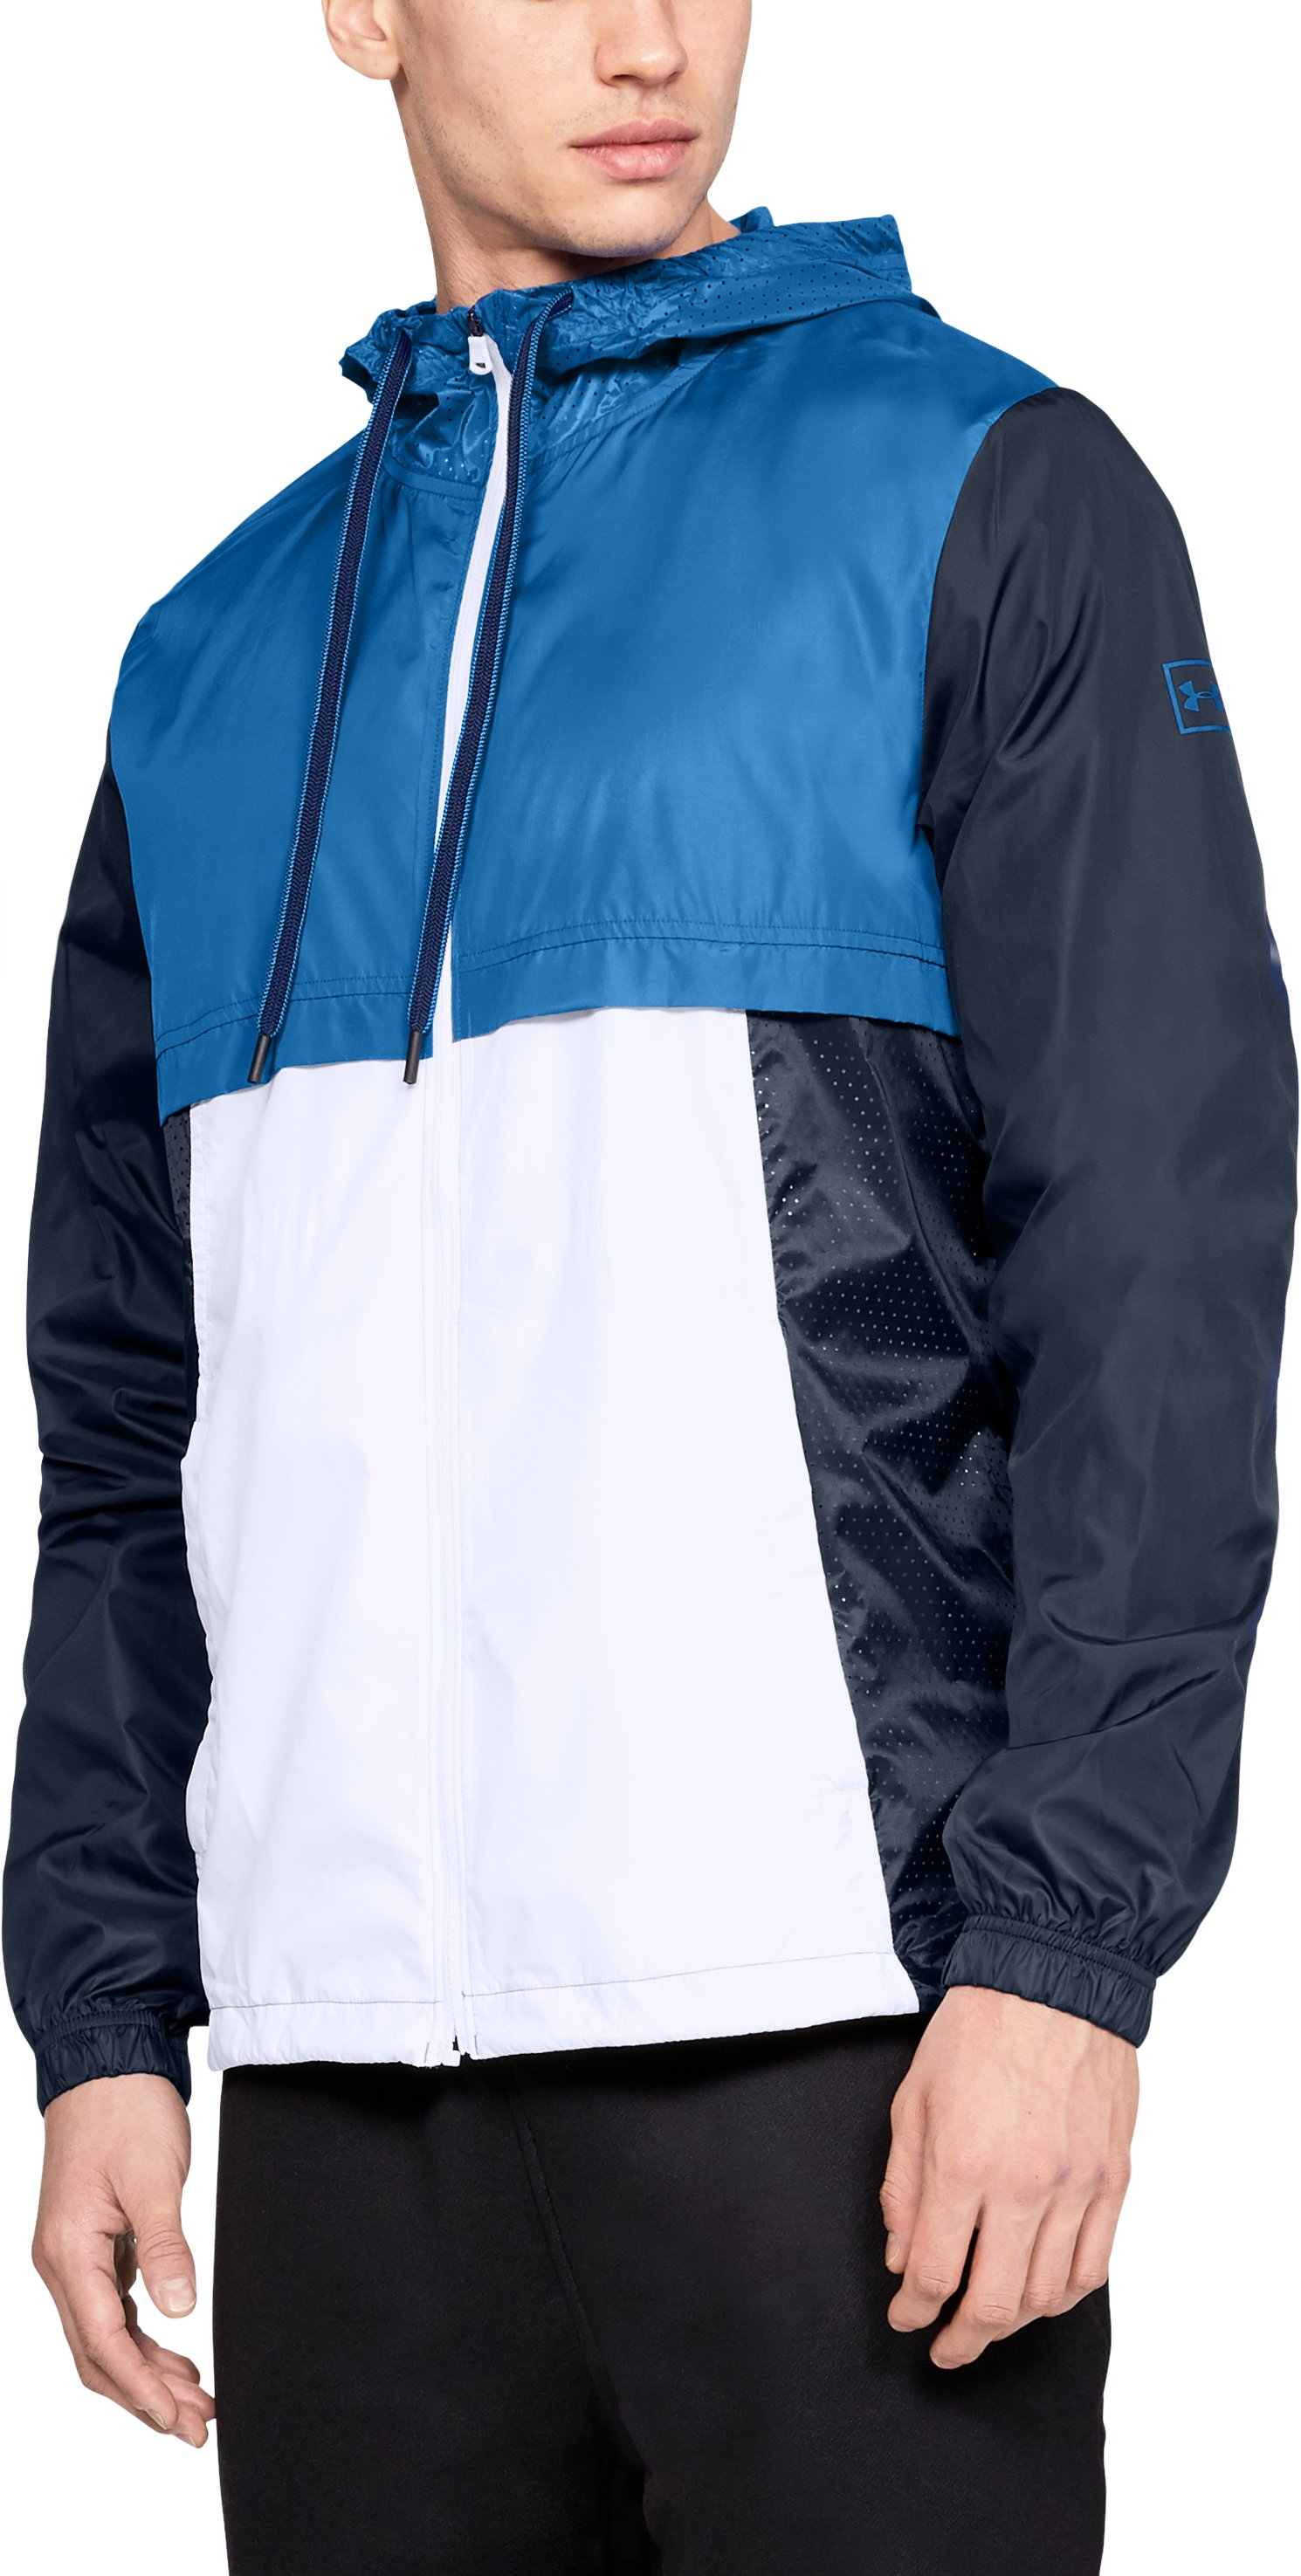 Men's UA Sportstyle Windbreaker Jacket, Academy